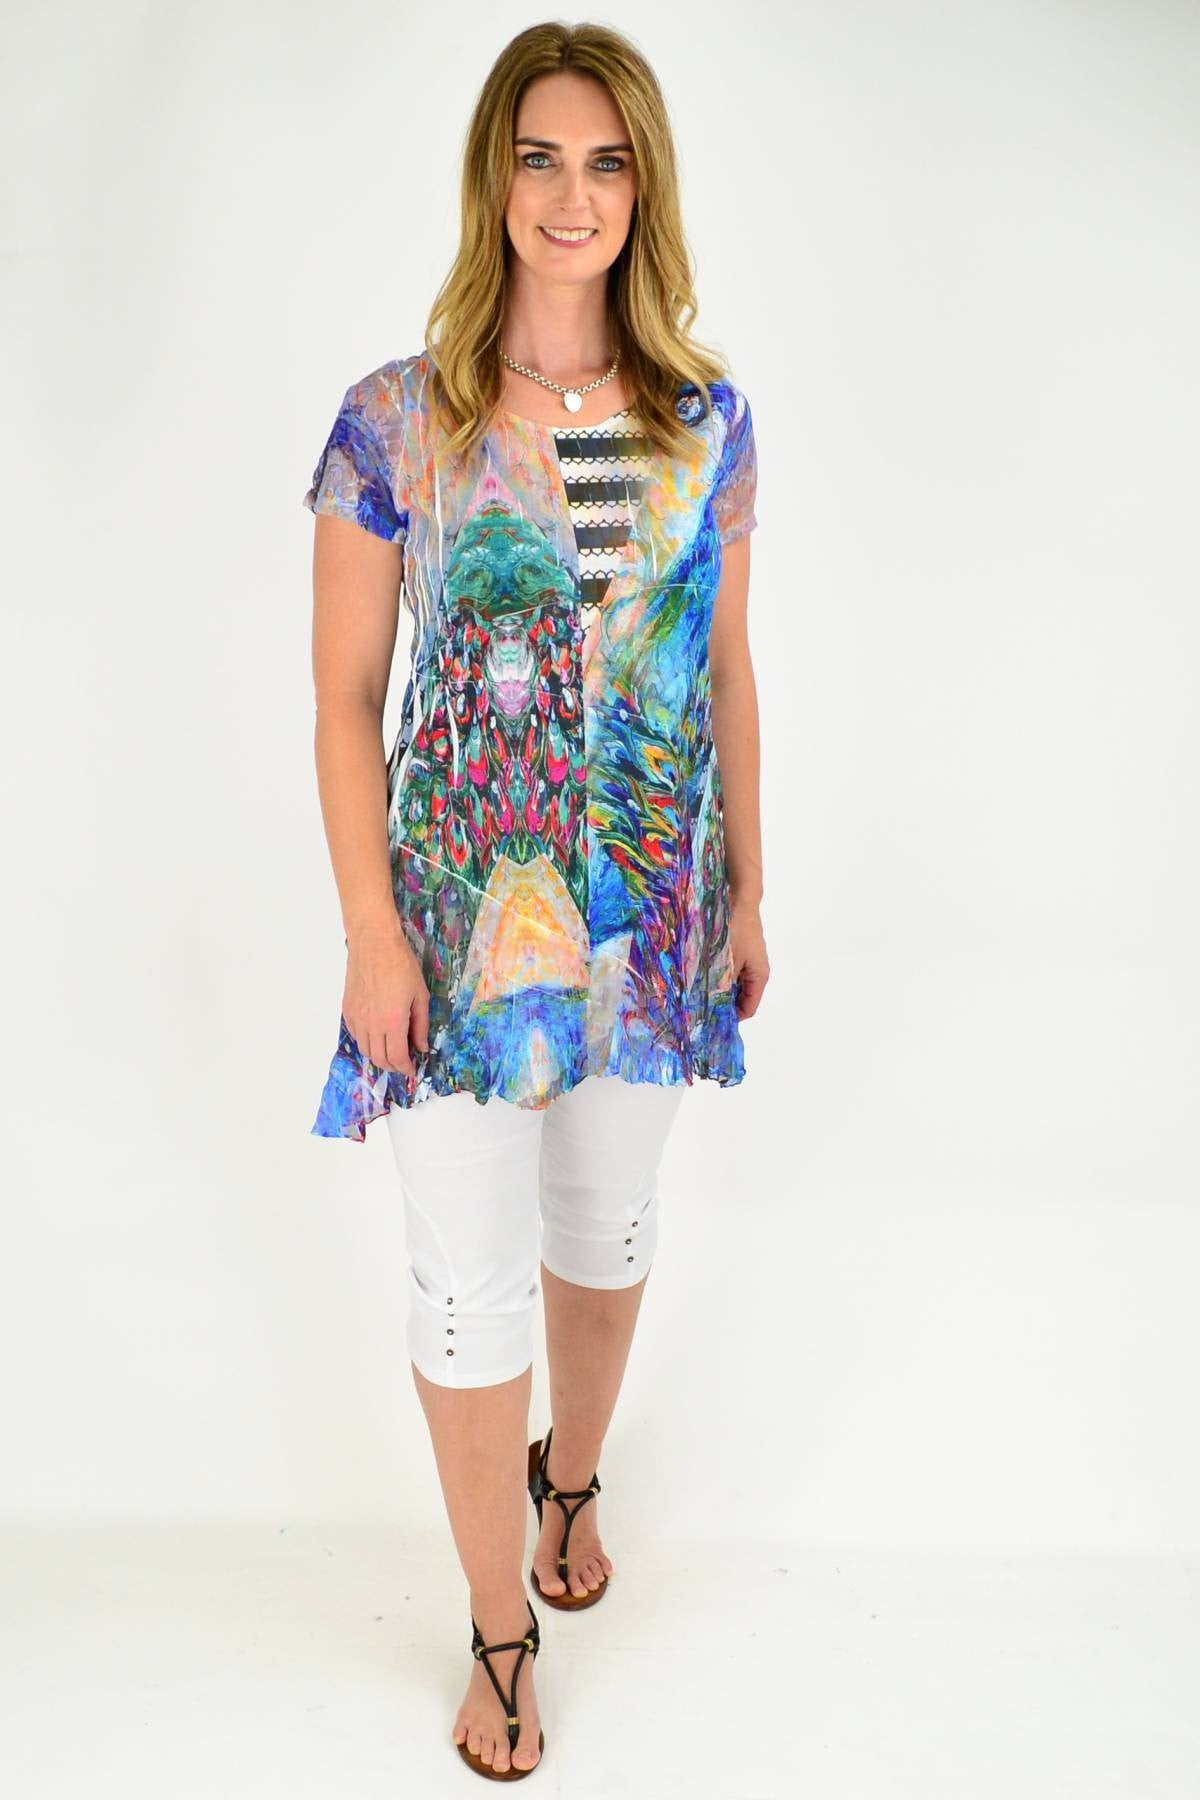 ladies tunic top by david jessie